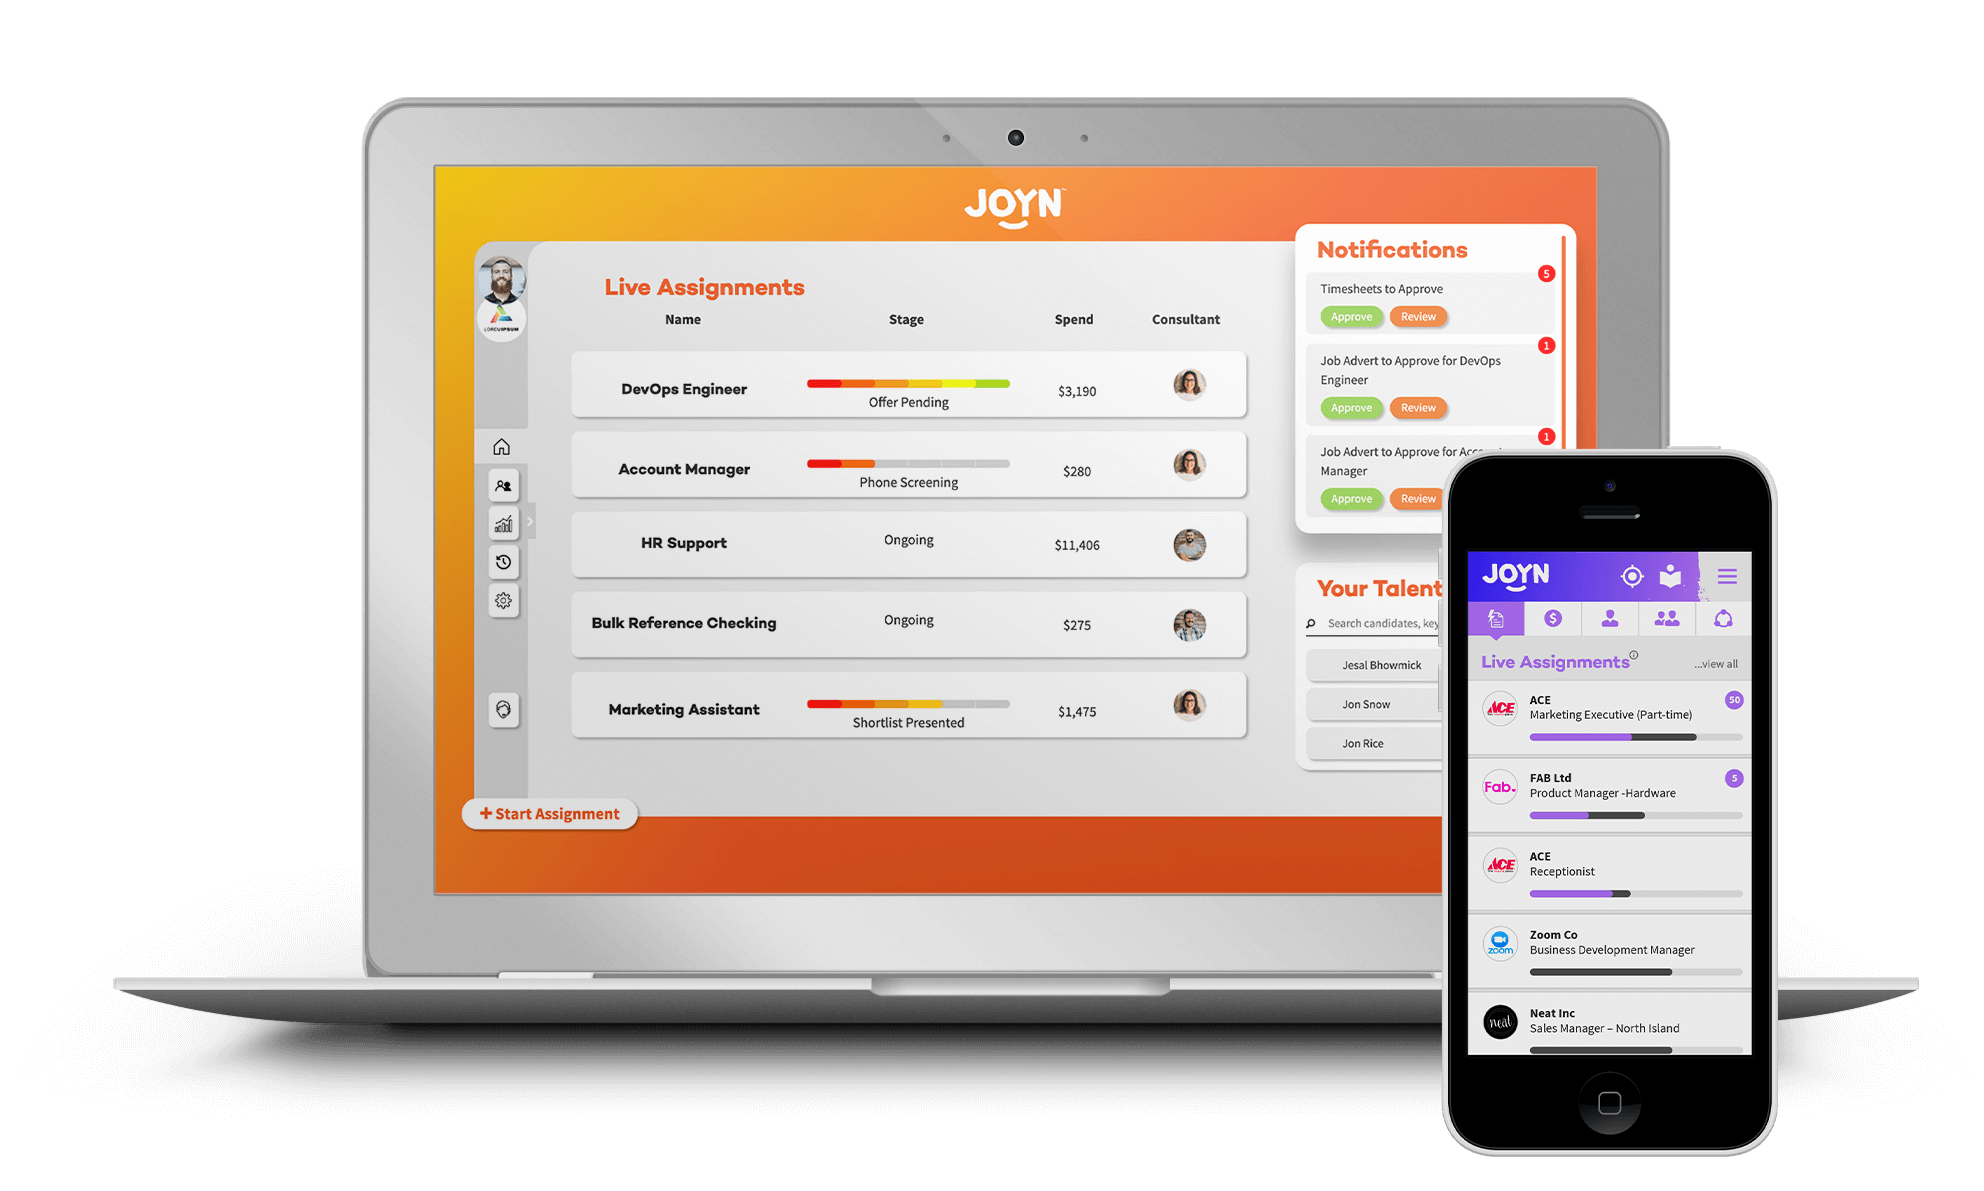 JOYN dashboards - Laptop and Smartphone